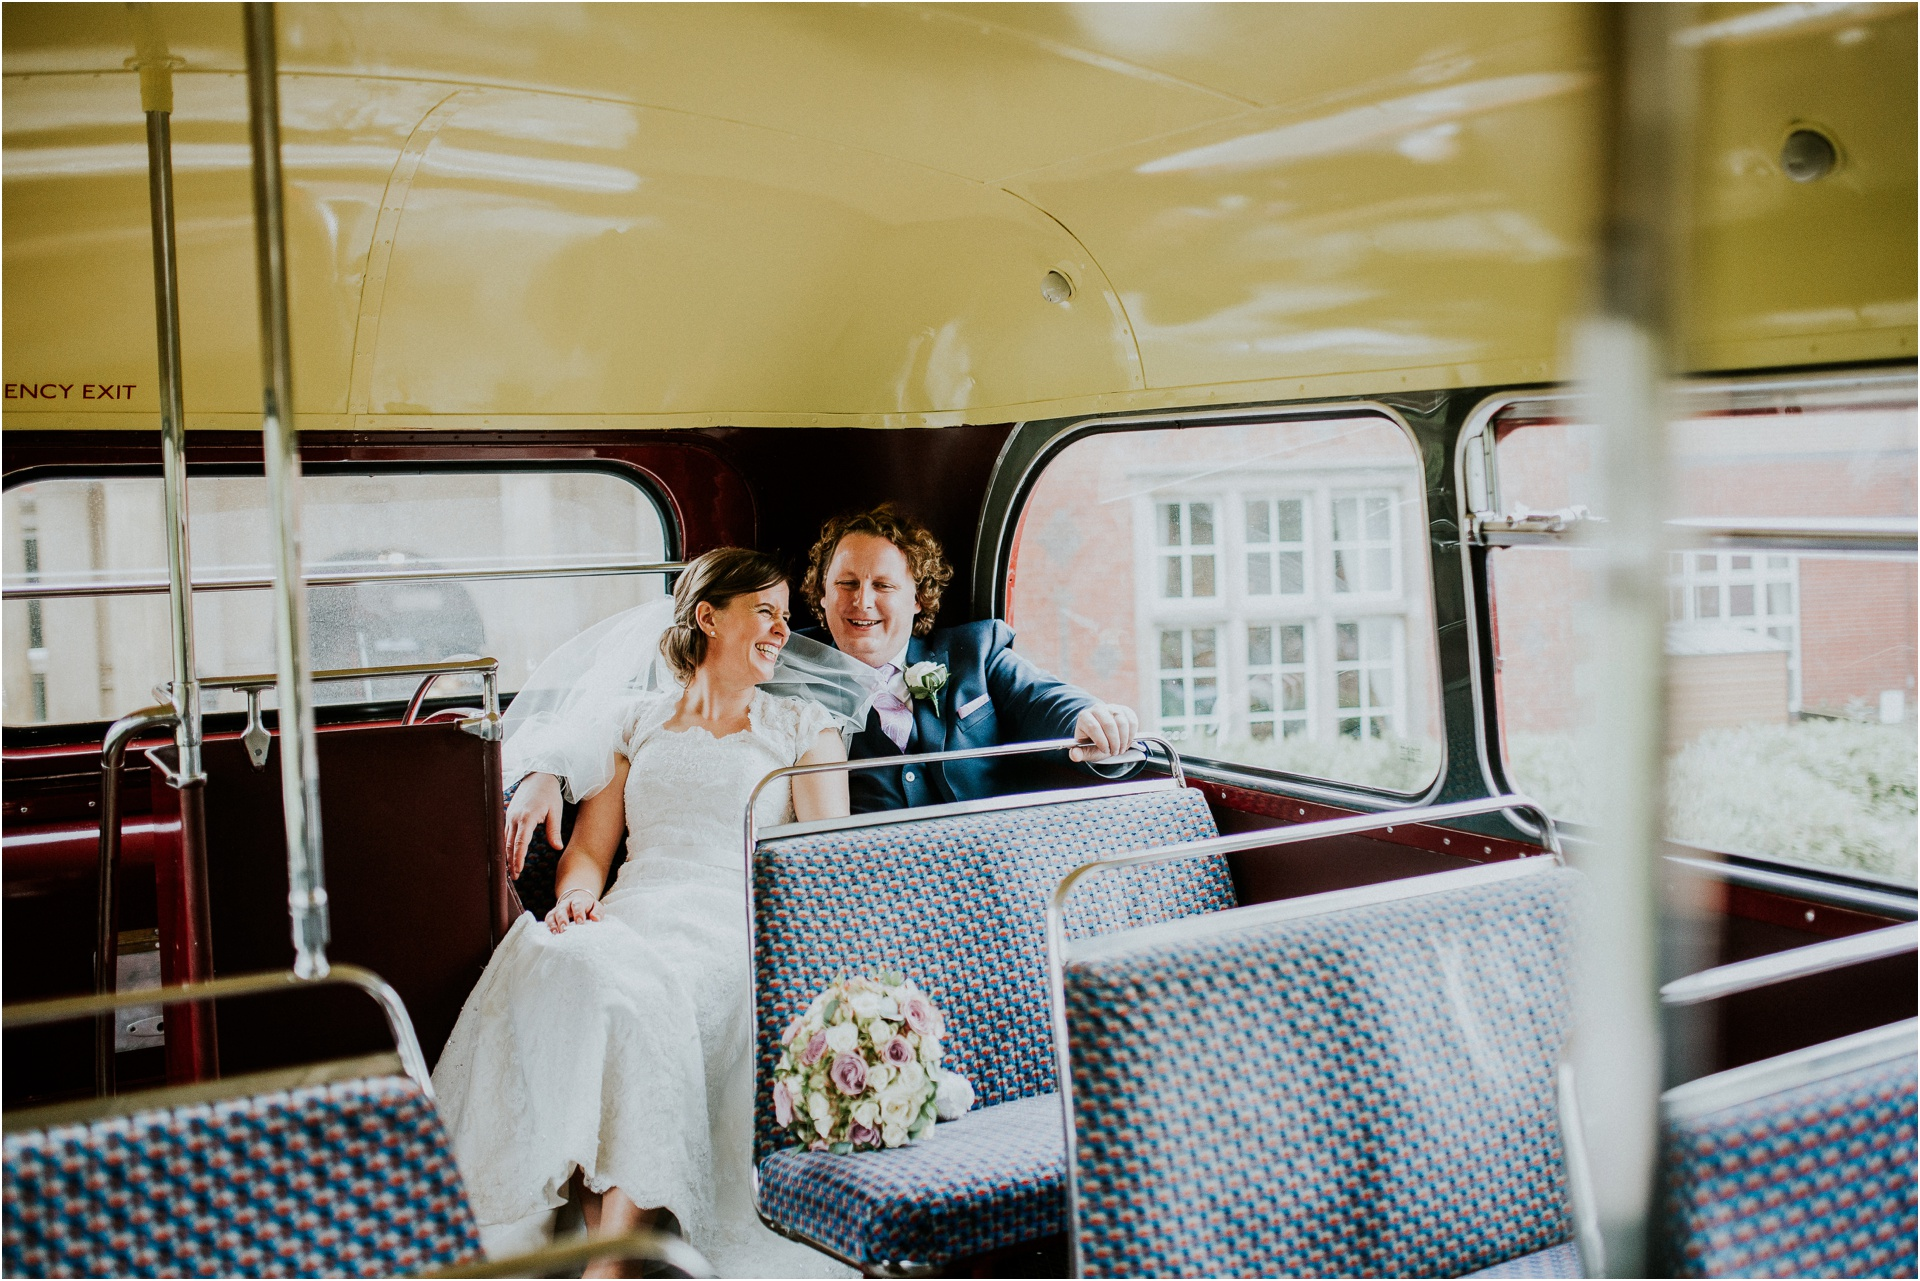 bridal portraits in a bus, Documentary wedding photographer cheshire